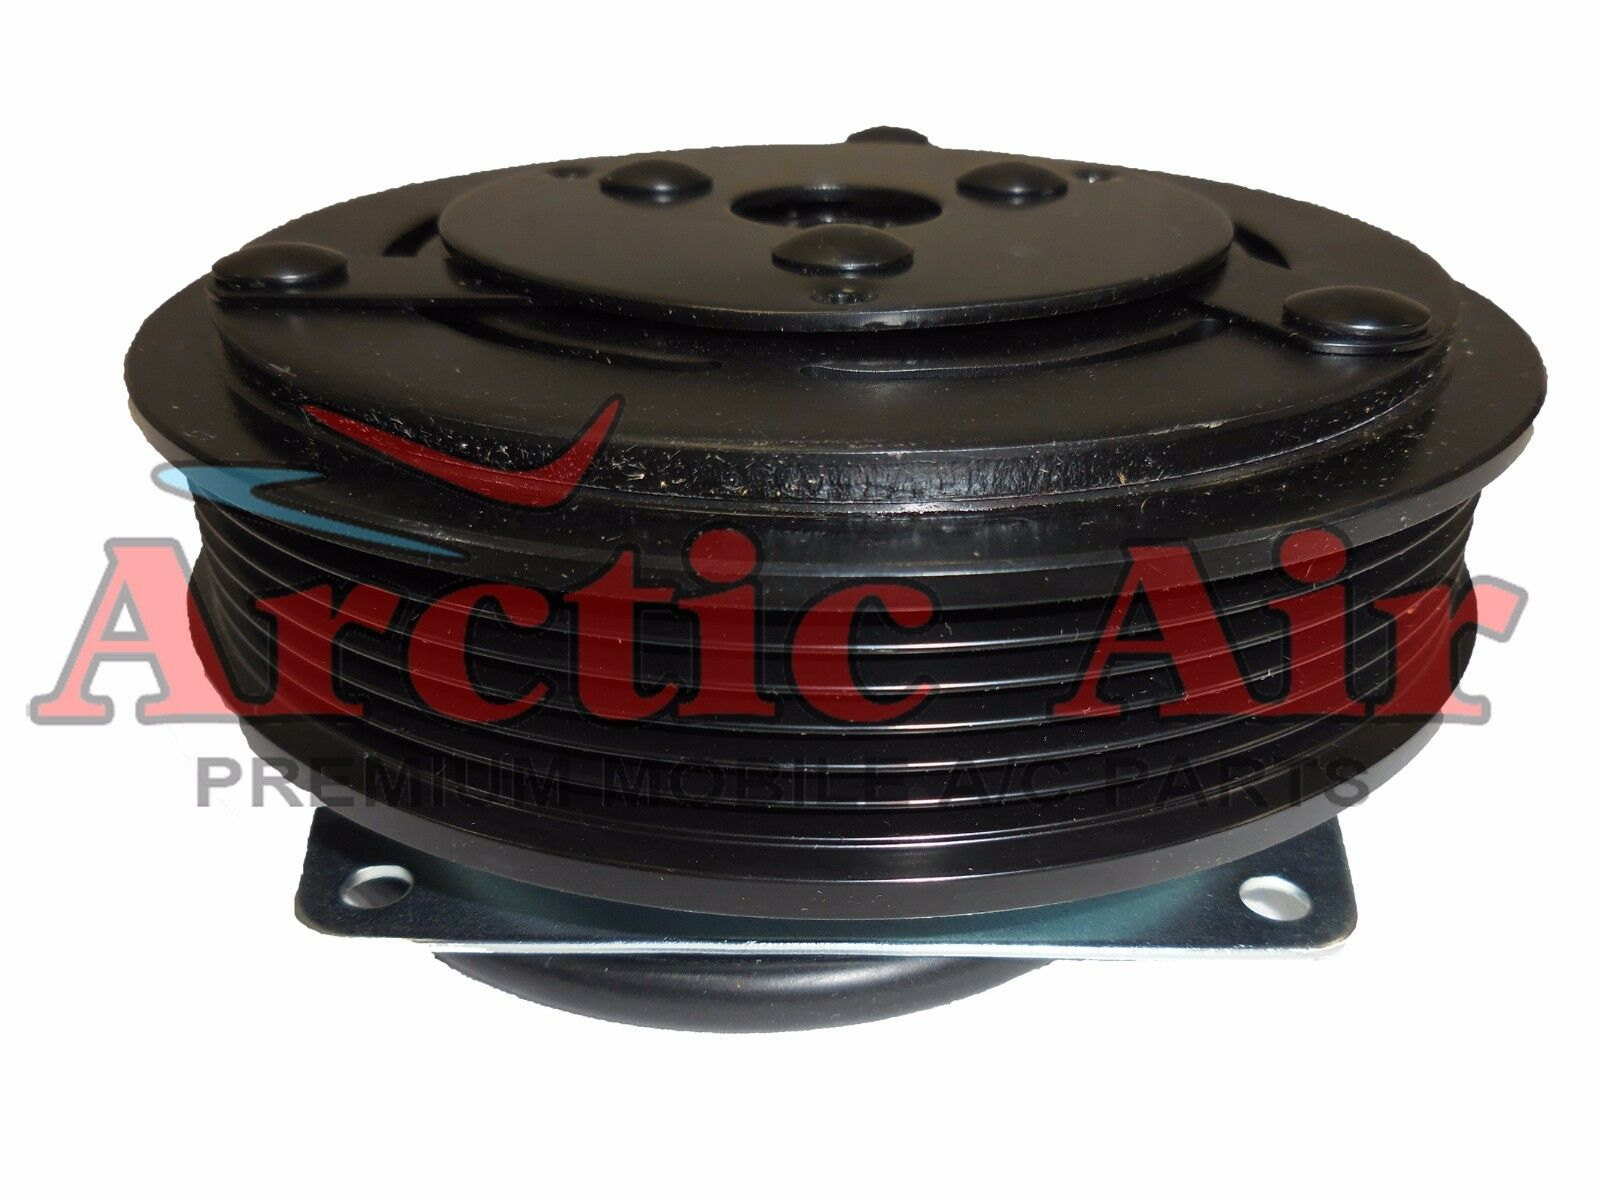 AC Compressor Clutch - York, PV6 Groove, Keyed, 2 Wire 12V